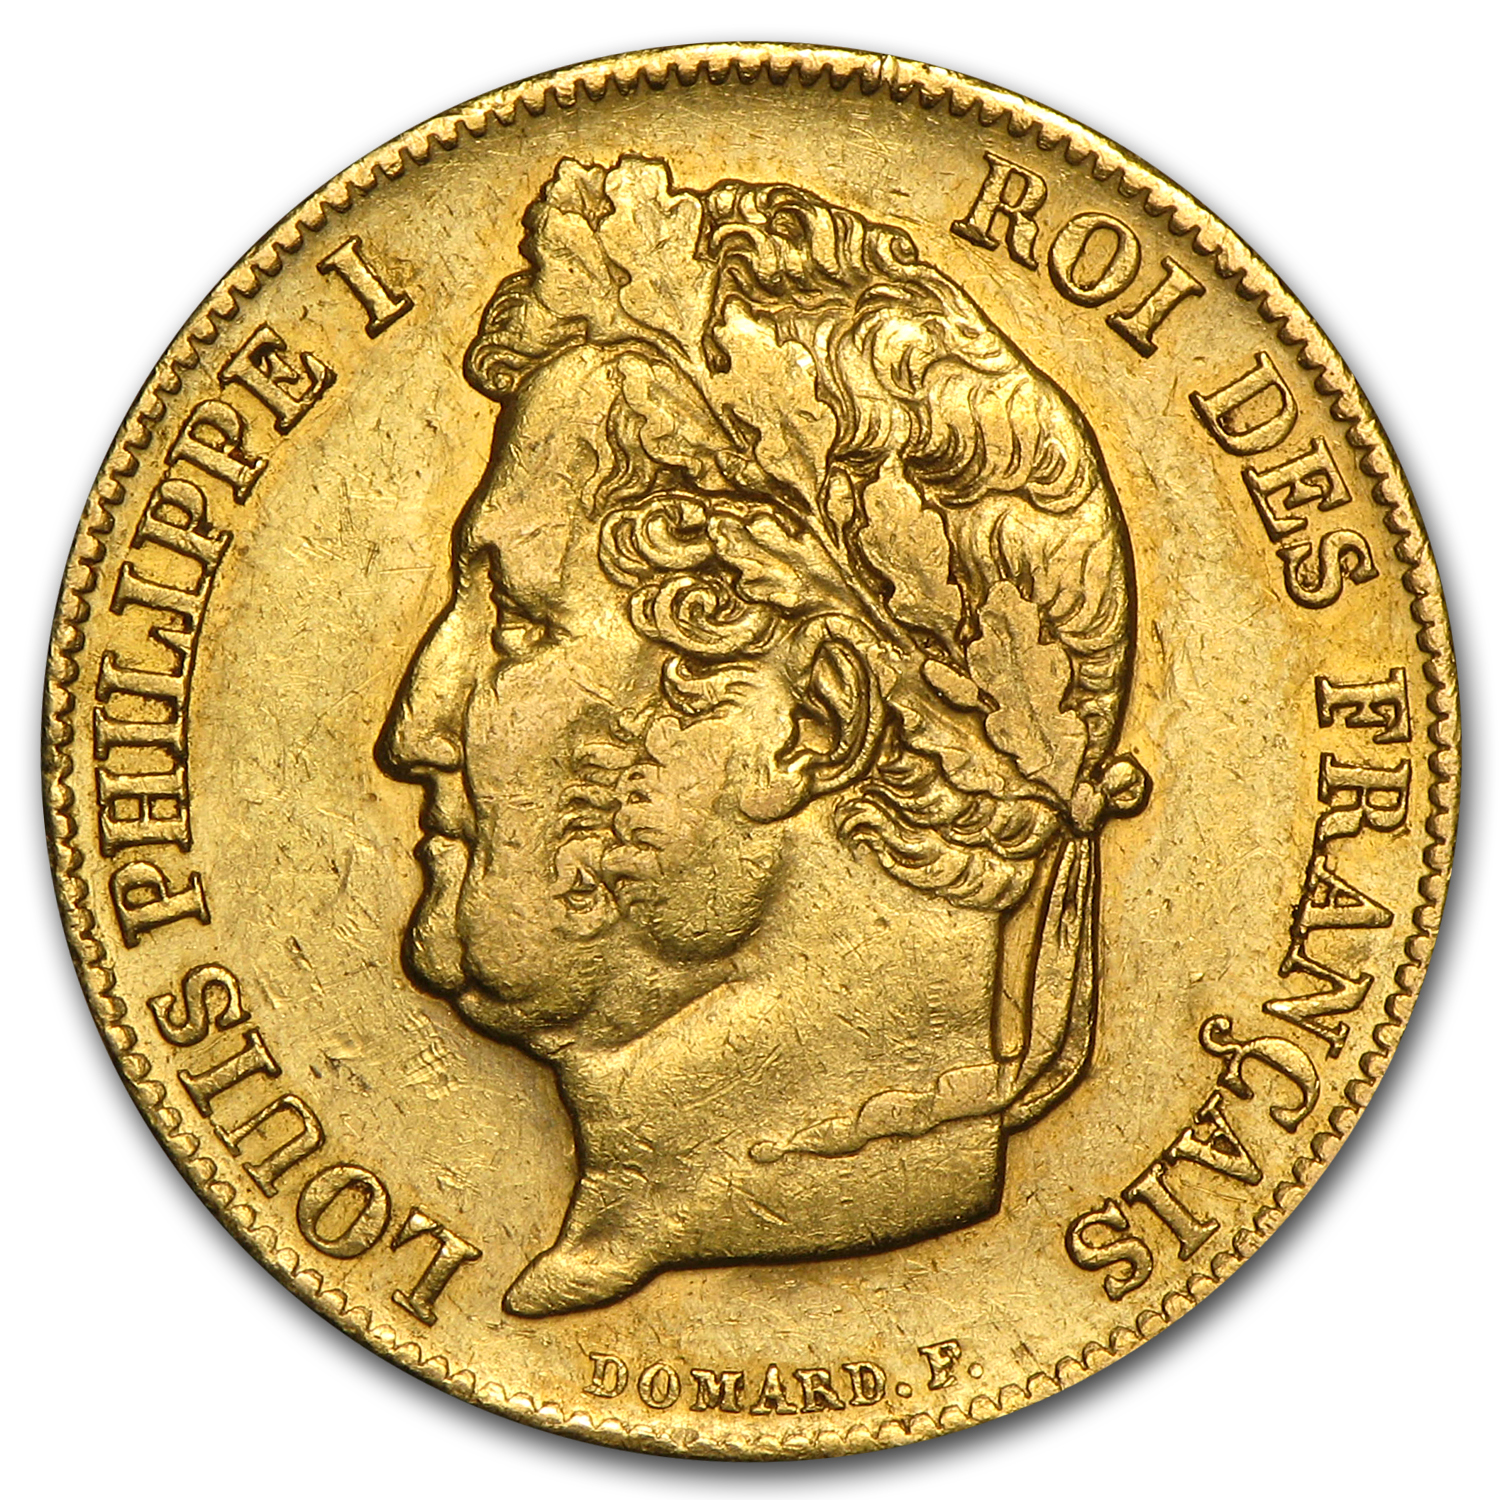 France Gold 20 Francs (1830-1848 Louis Philippe) (XF)